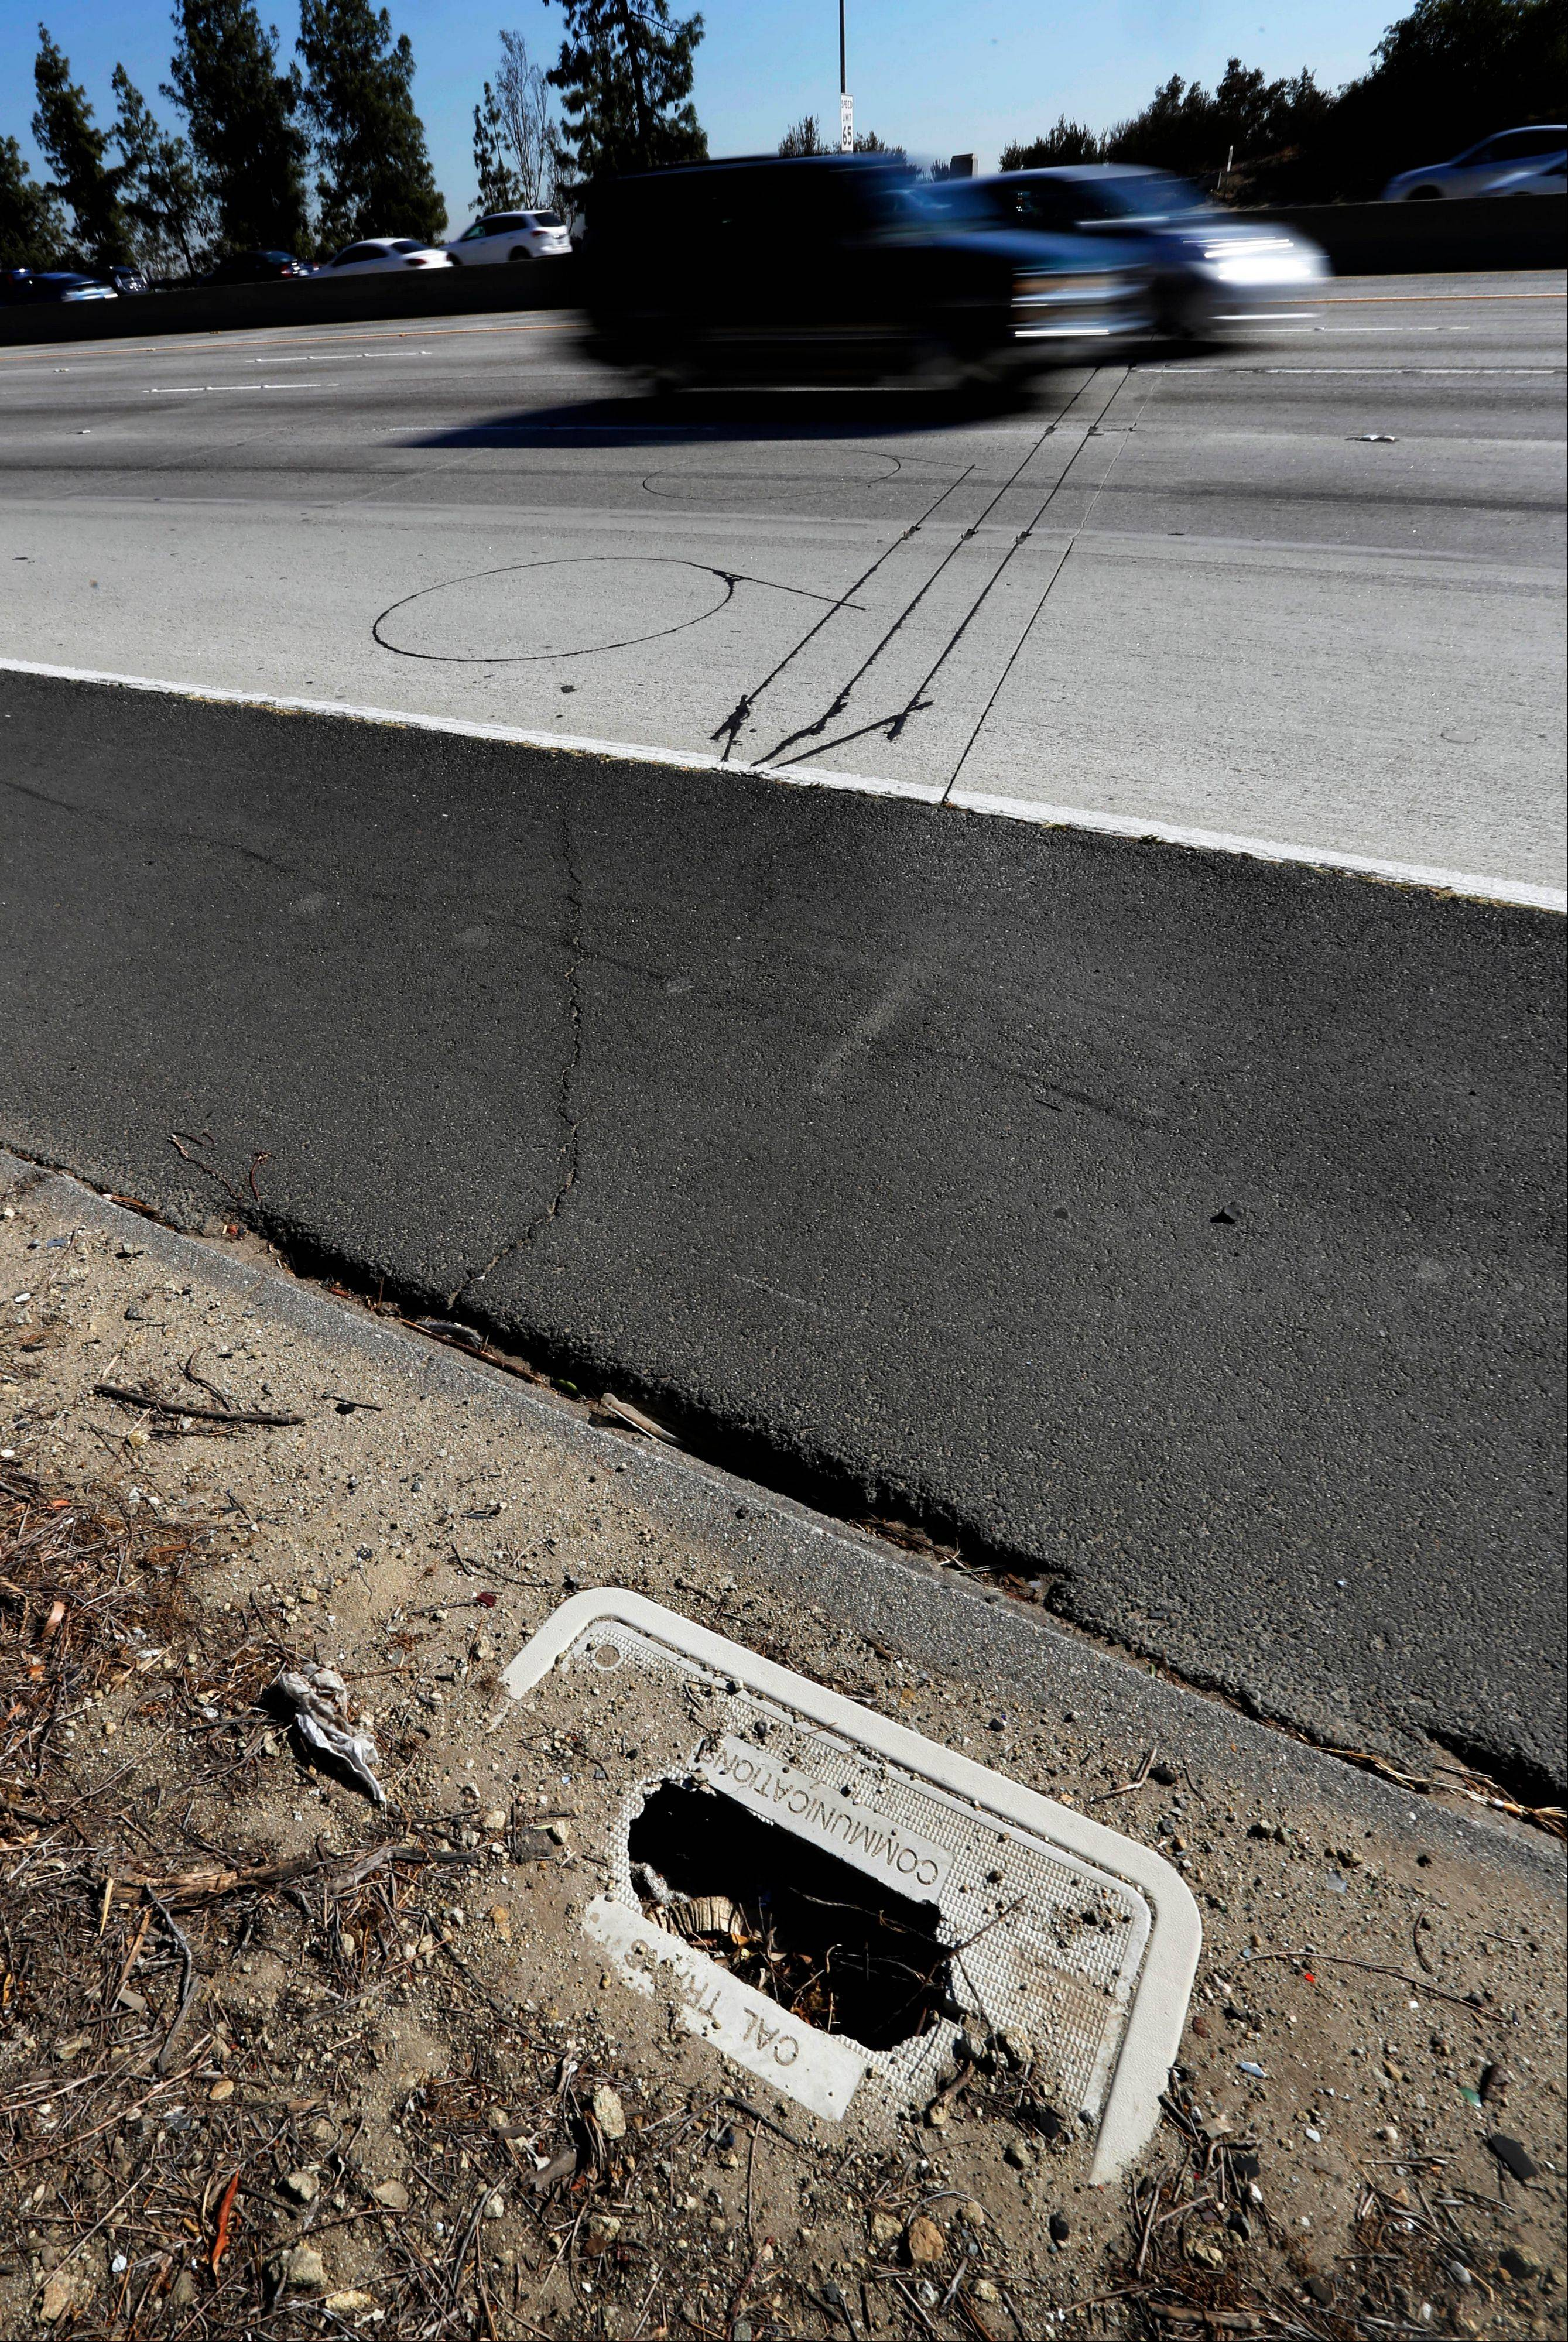 Cars pass over Caltrans traffic sensors on the State Route 134 Freeway in Los Angeles but the control box is damaged. About one-third of traffic sensors that Caltrans operates on highways statewide do not work.